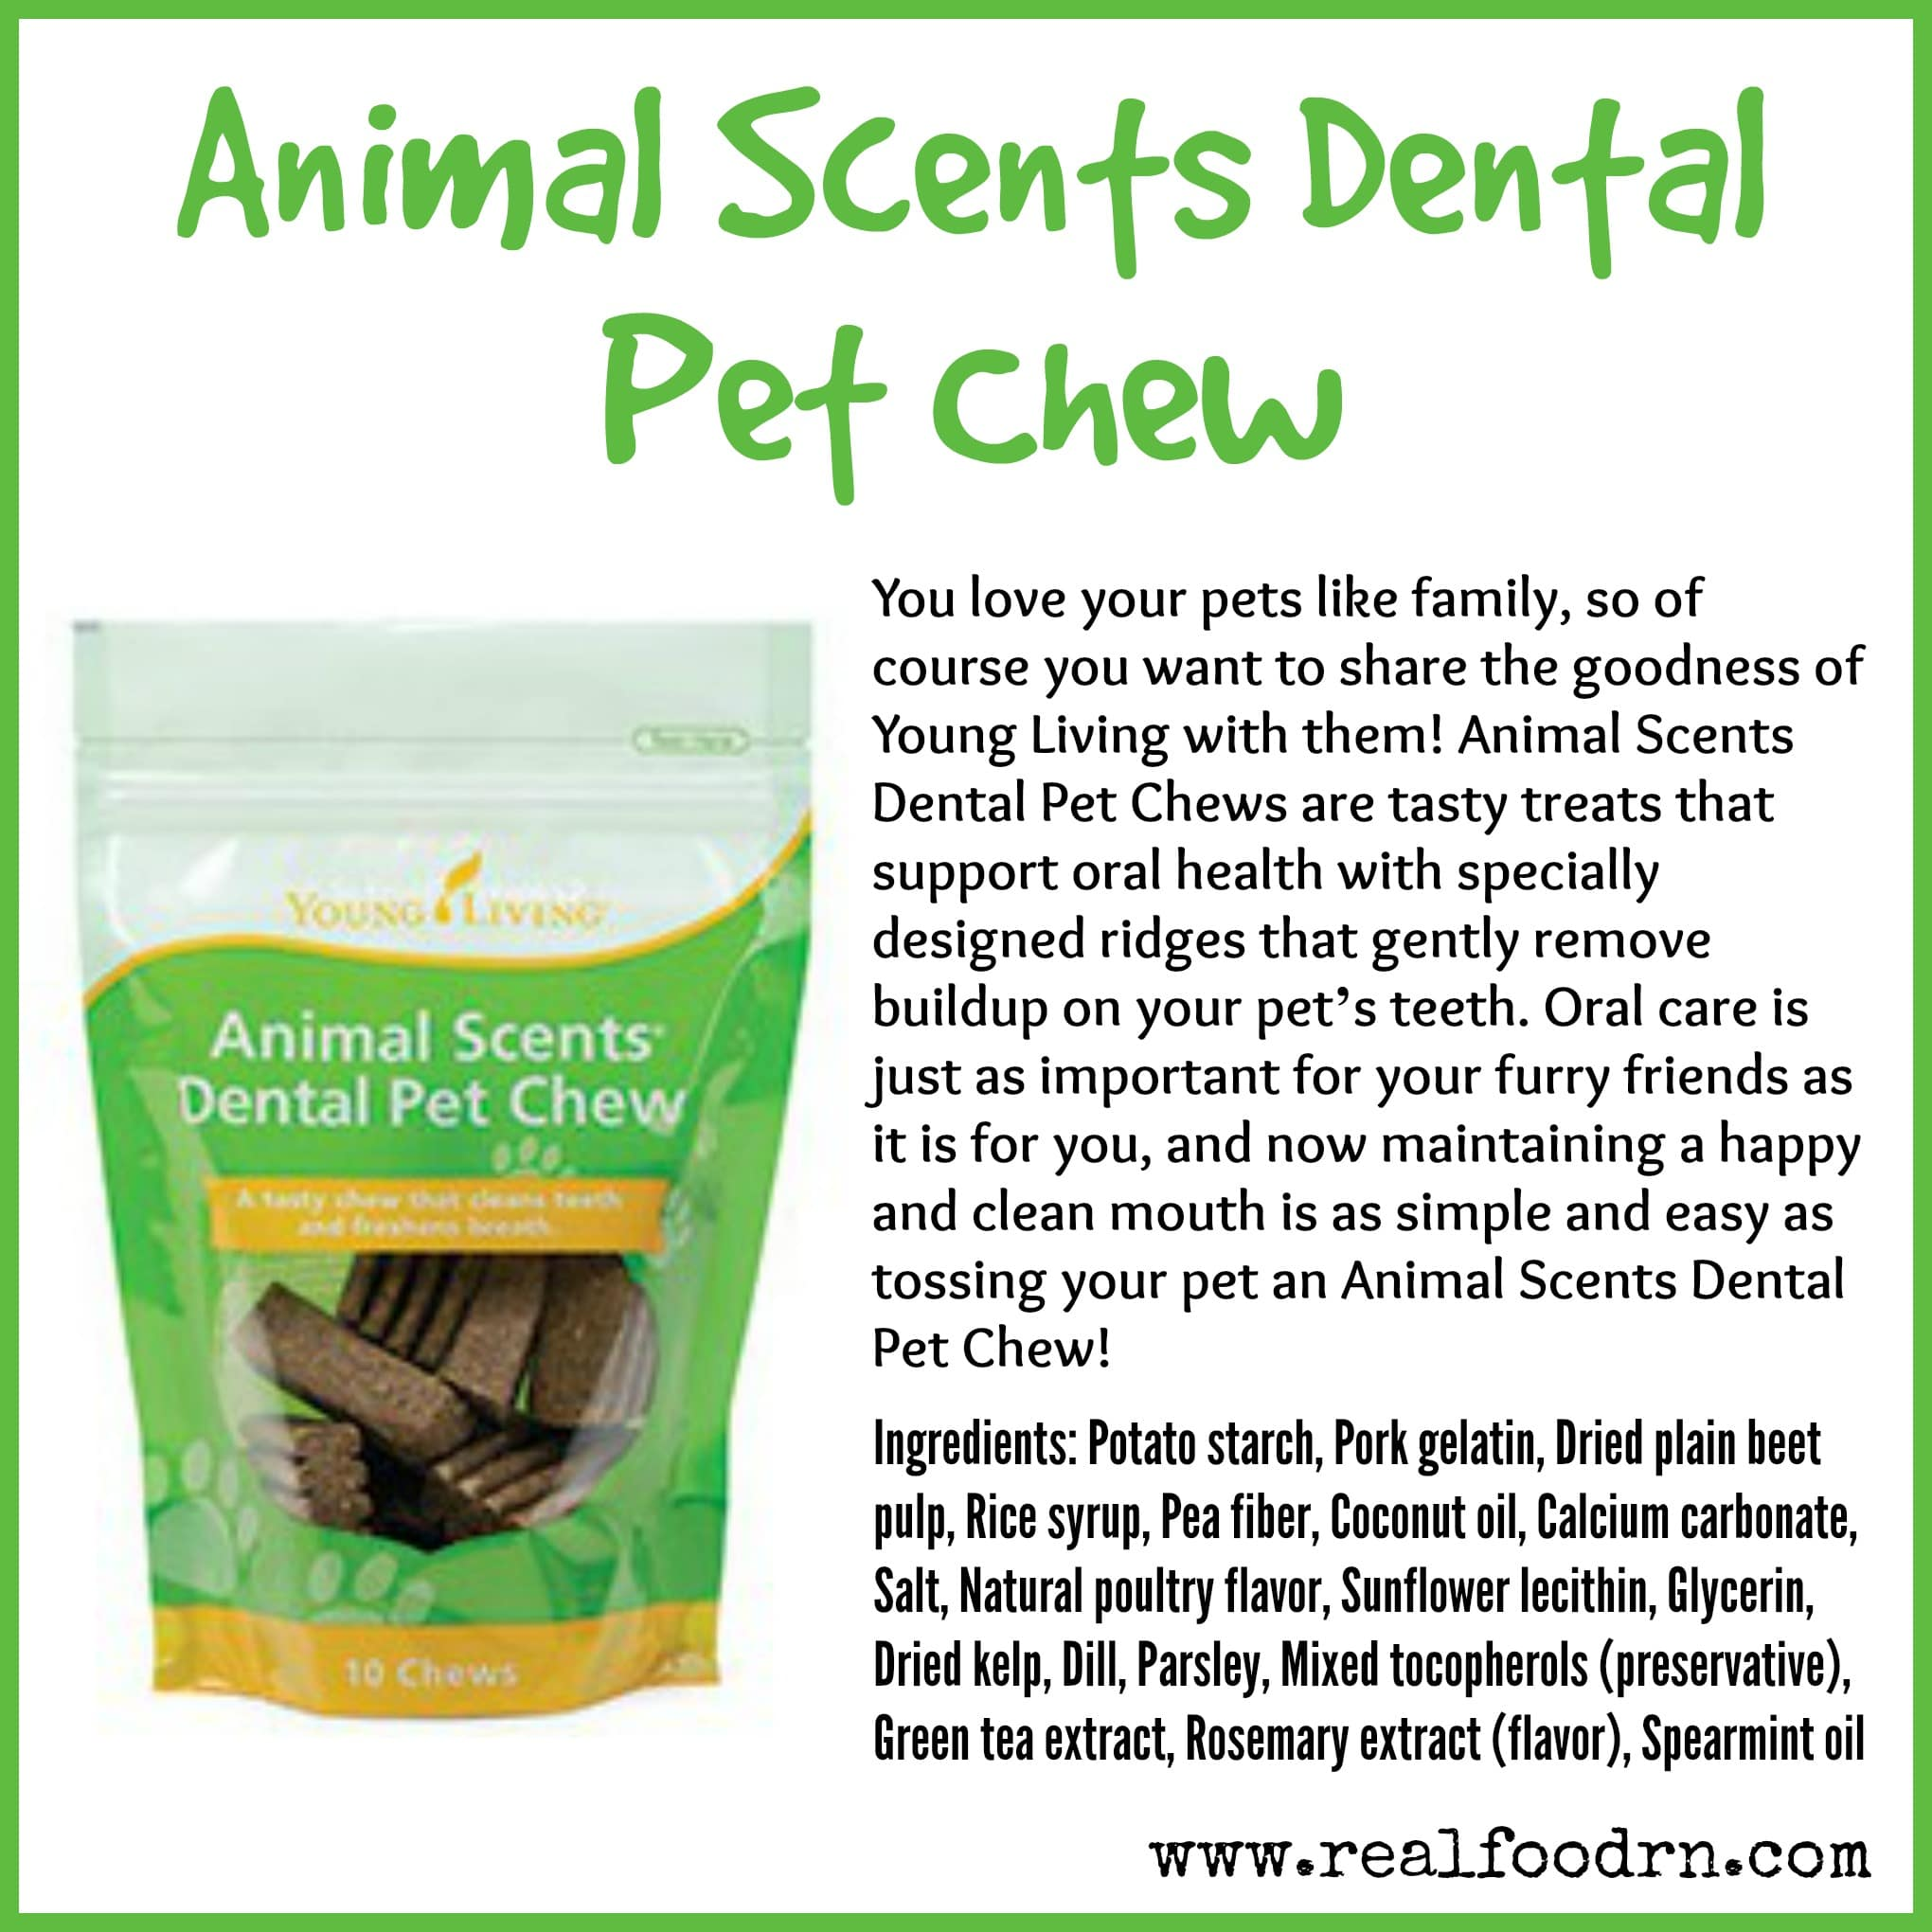 Animal Scents Dental Pet Chew